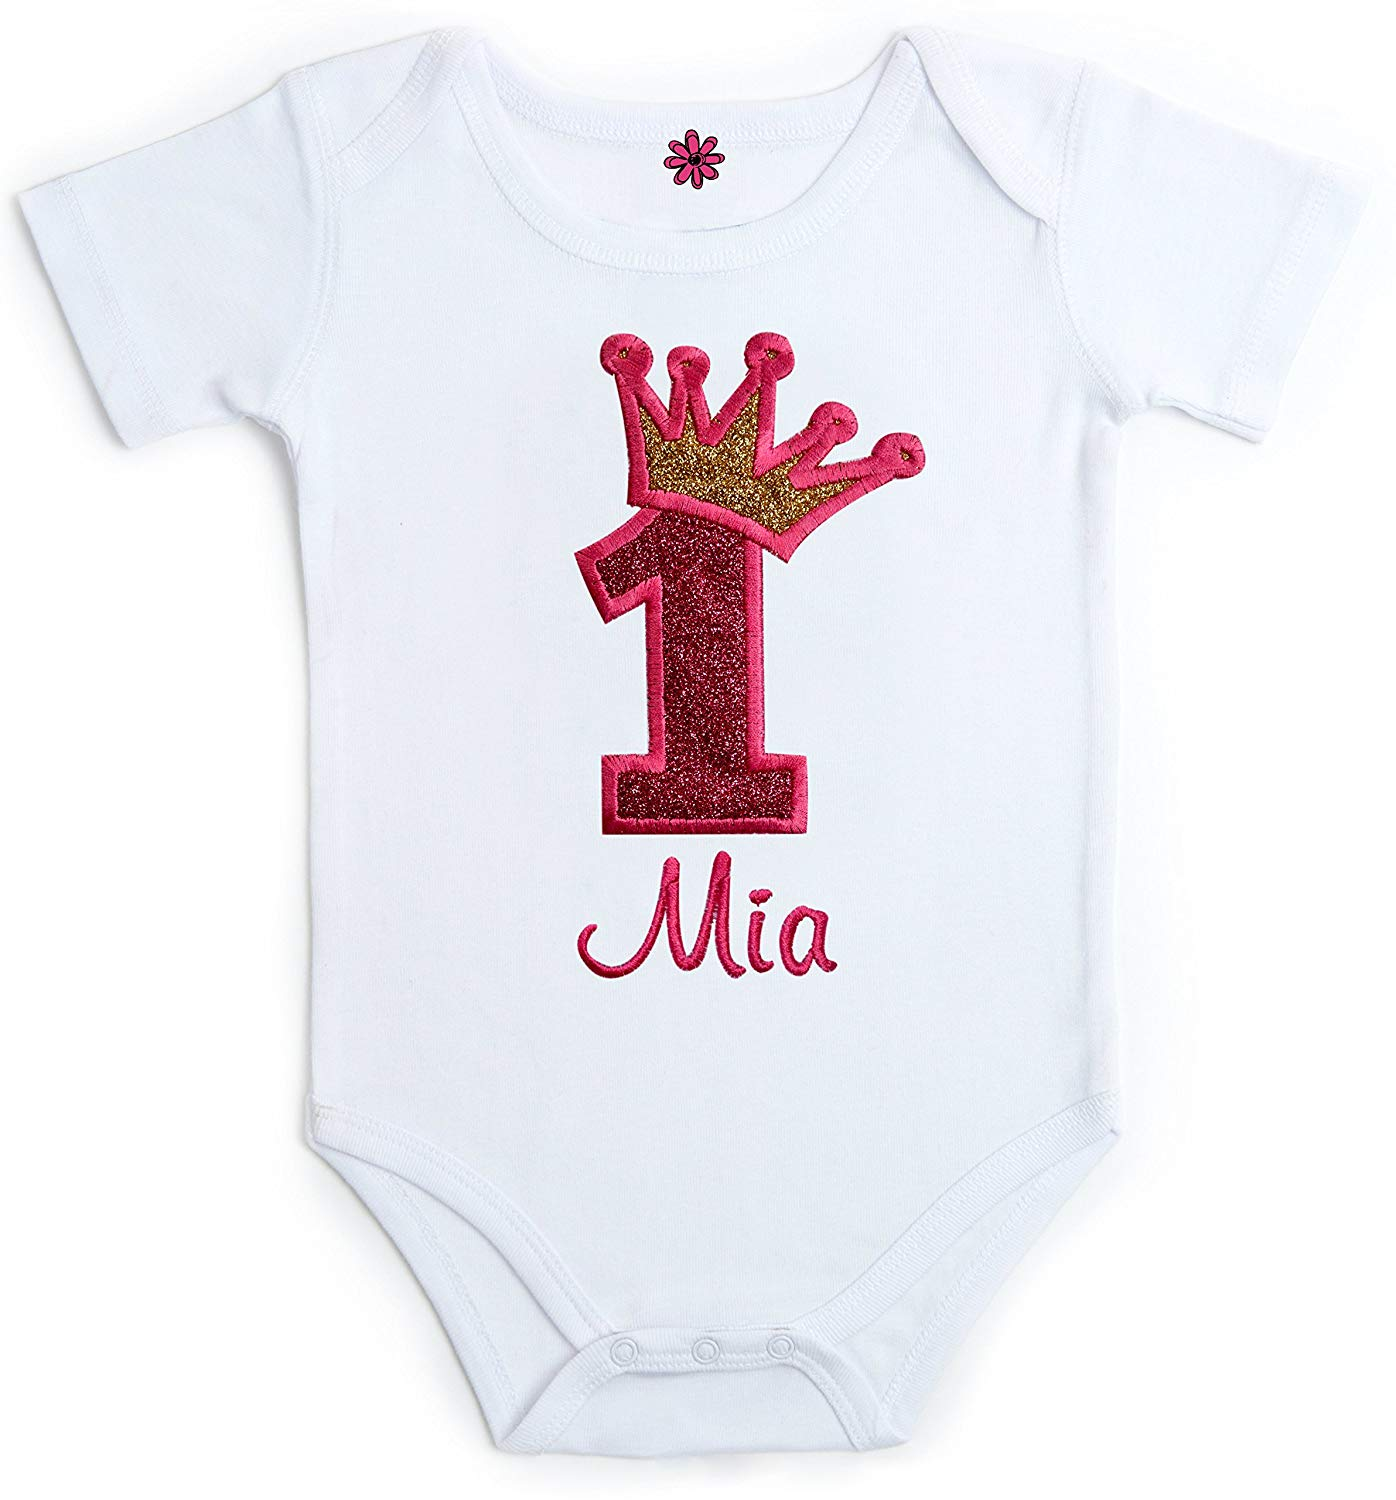 4de9ab07db1 Get Quotations · Funny Girl Designs Embroidered Sparkling First Birthday  Onesie Bodysuit for Baby Girl with Your Custom Name